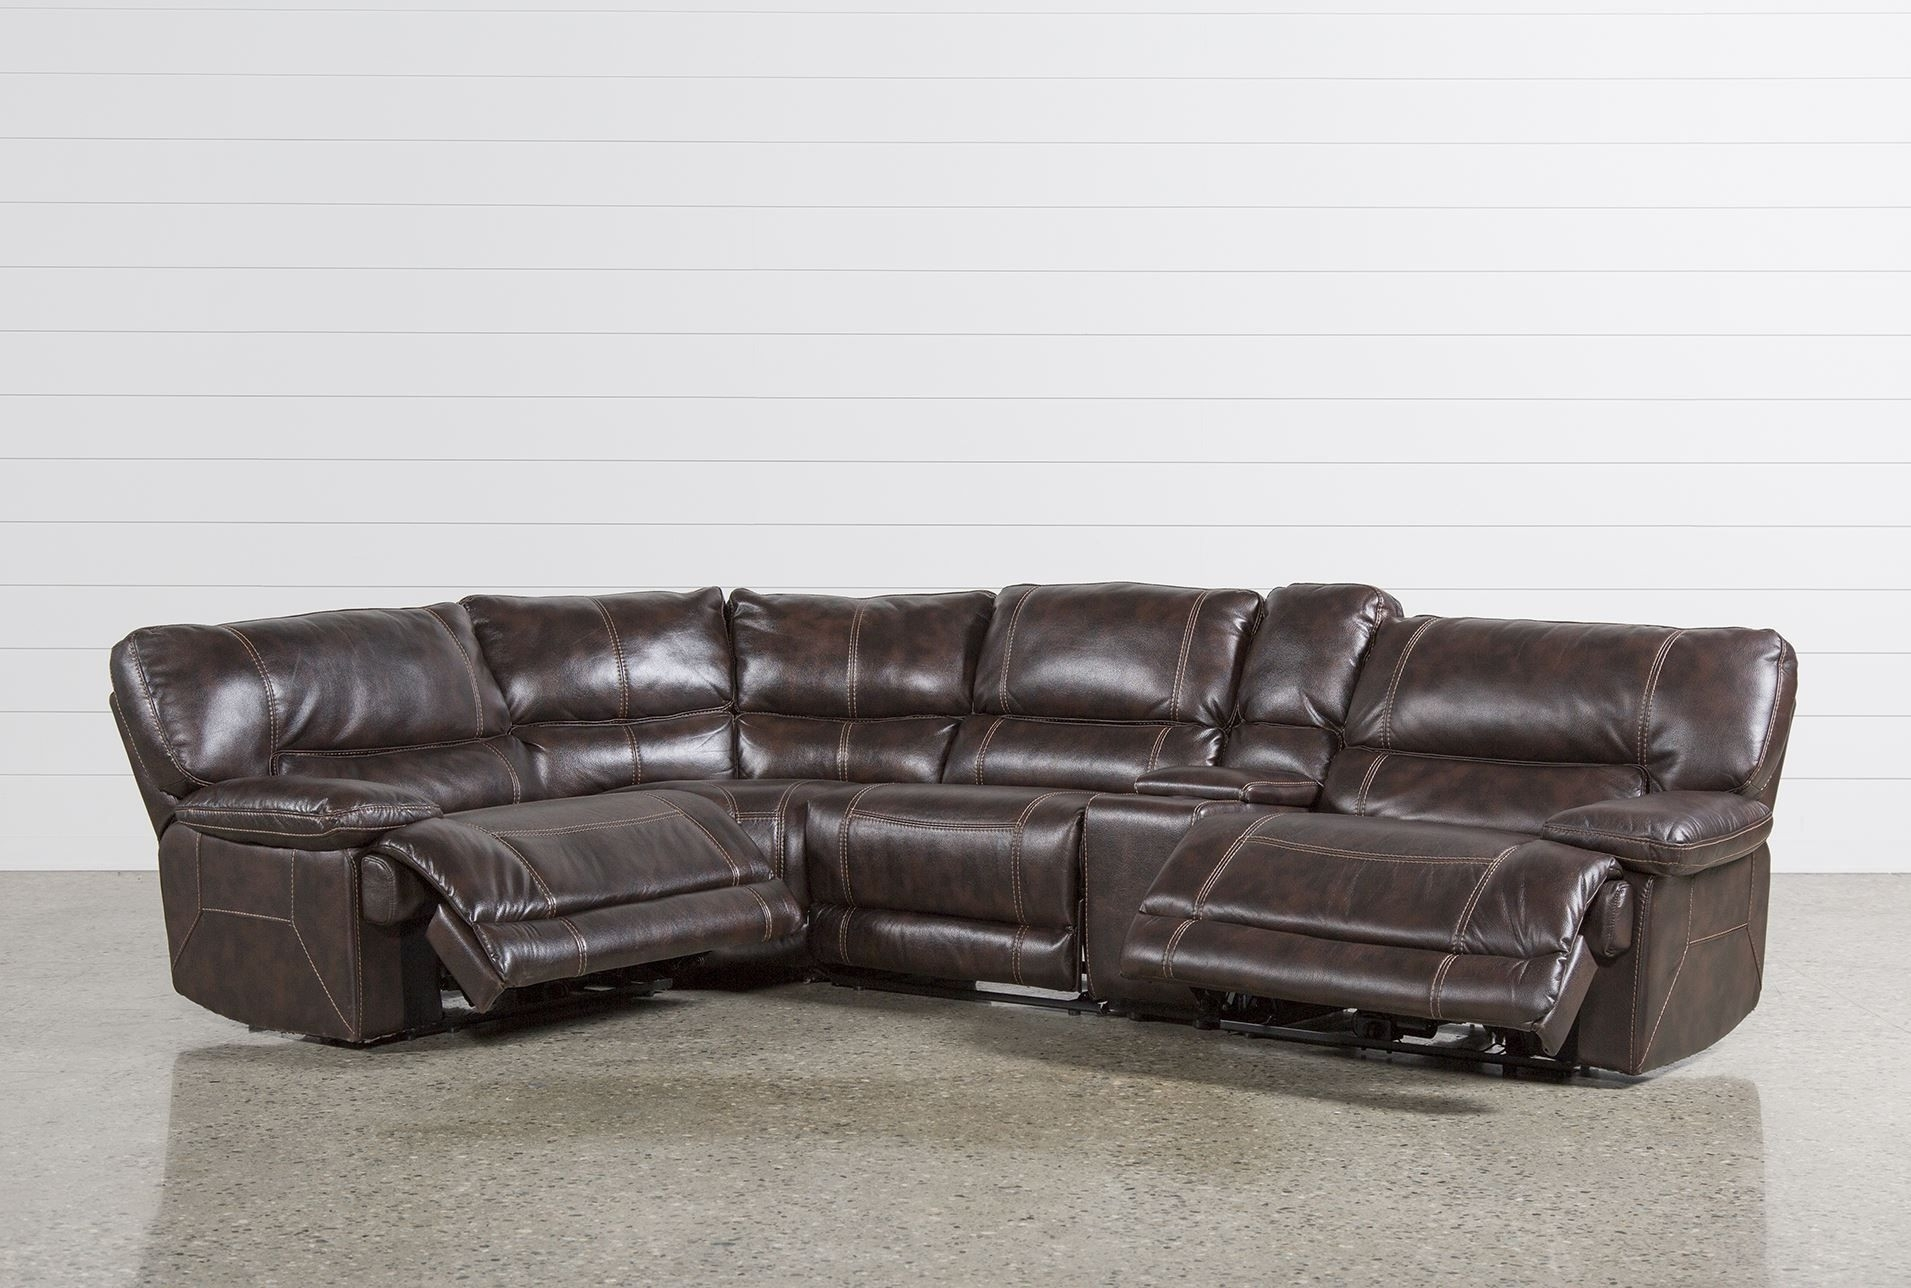 Living Spaces Sectional – Tidex For Aspen 2 Piece Sectionals With Raf Chaise (Image 17 of 25)